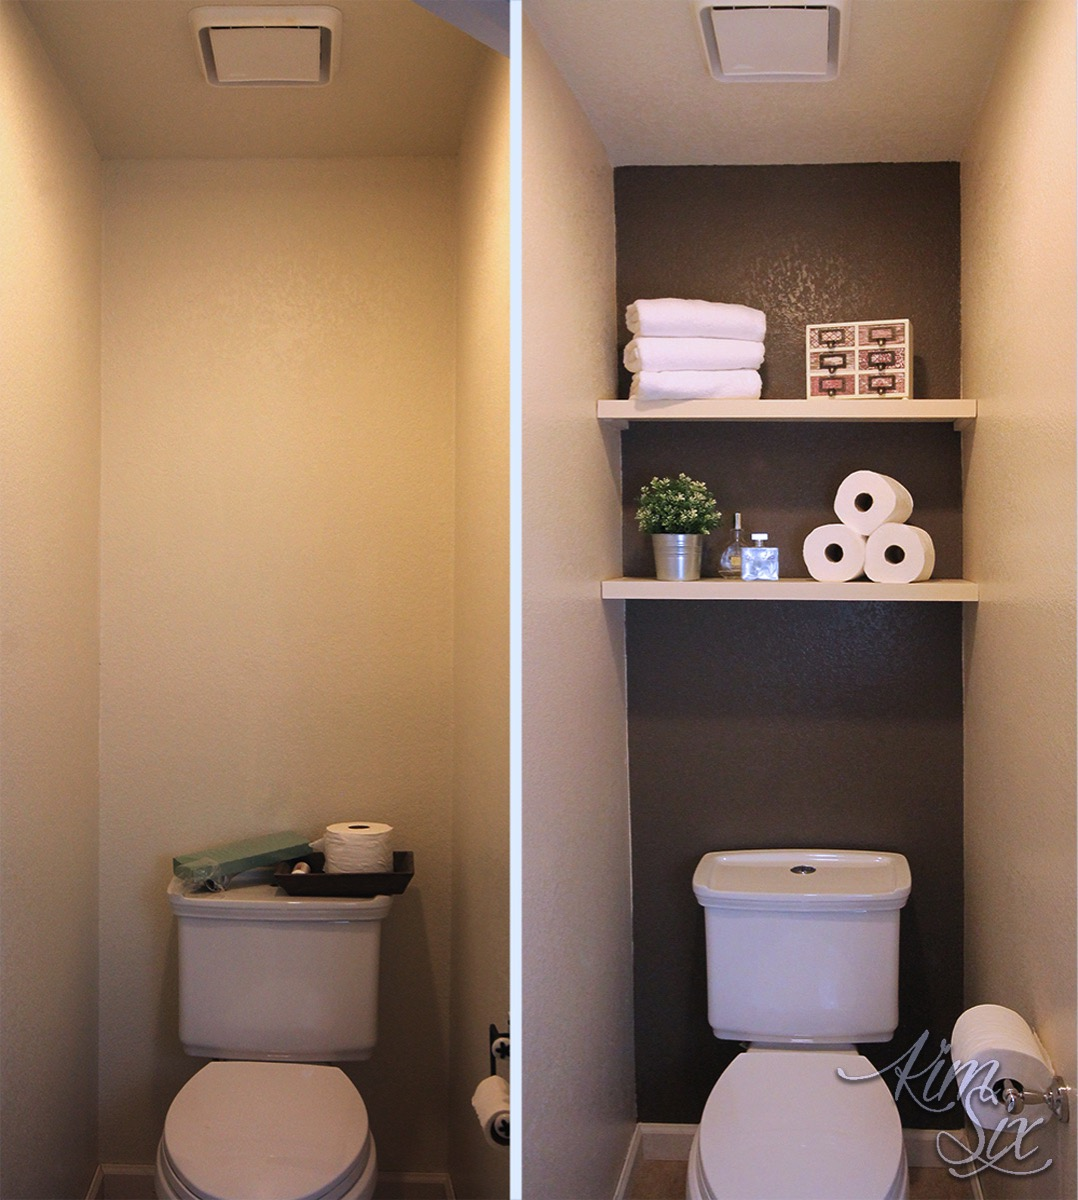 Bathroom Ideas: Water-Closet-with-Dark-Accent-Wall-Before-and-After.jpg